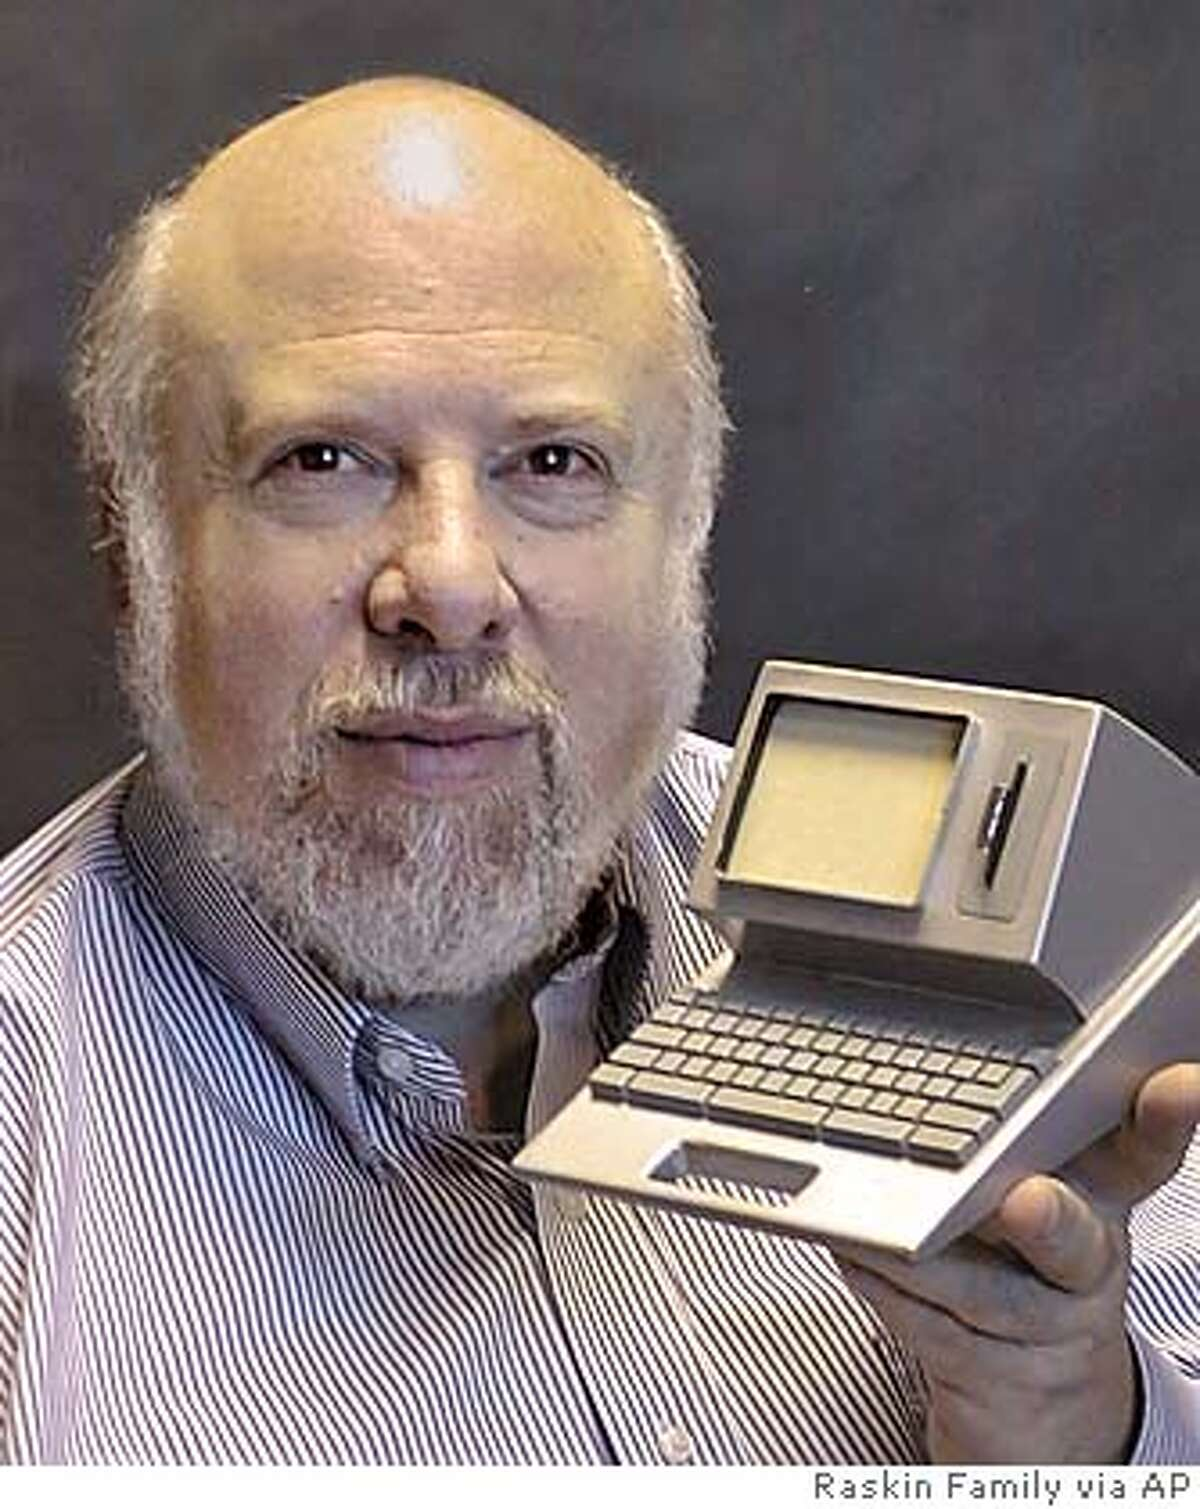 **FILE**Jef Raskin, a computer interface expert who conceived the Apple Computer Inc. Macintosh computer, is shown holding a self-built model of one of his early computers, at his house in Pacifica, Calif., in January 2001. Raskin, 61, died on Saturday. He joined Apple in 1978 as its 31st employee. (AP Photo/Aza Raskin, Raskin Family ho) JANUARY 2001 FILE PHOTO RASKIN FAMIILY HANDOUT